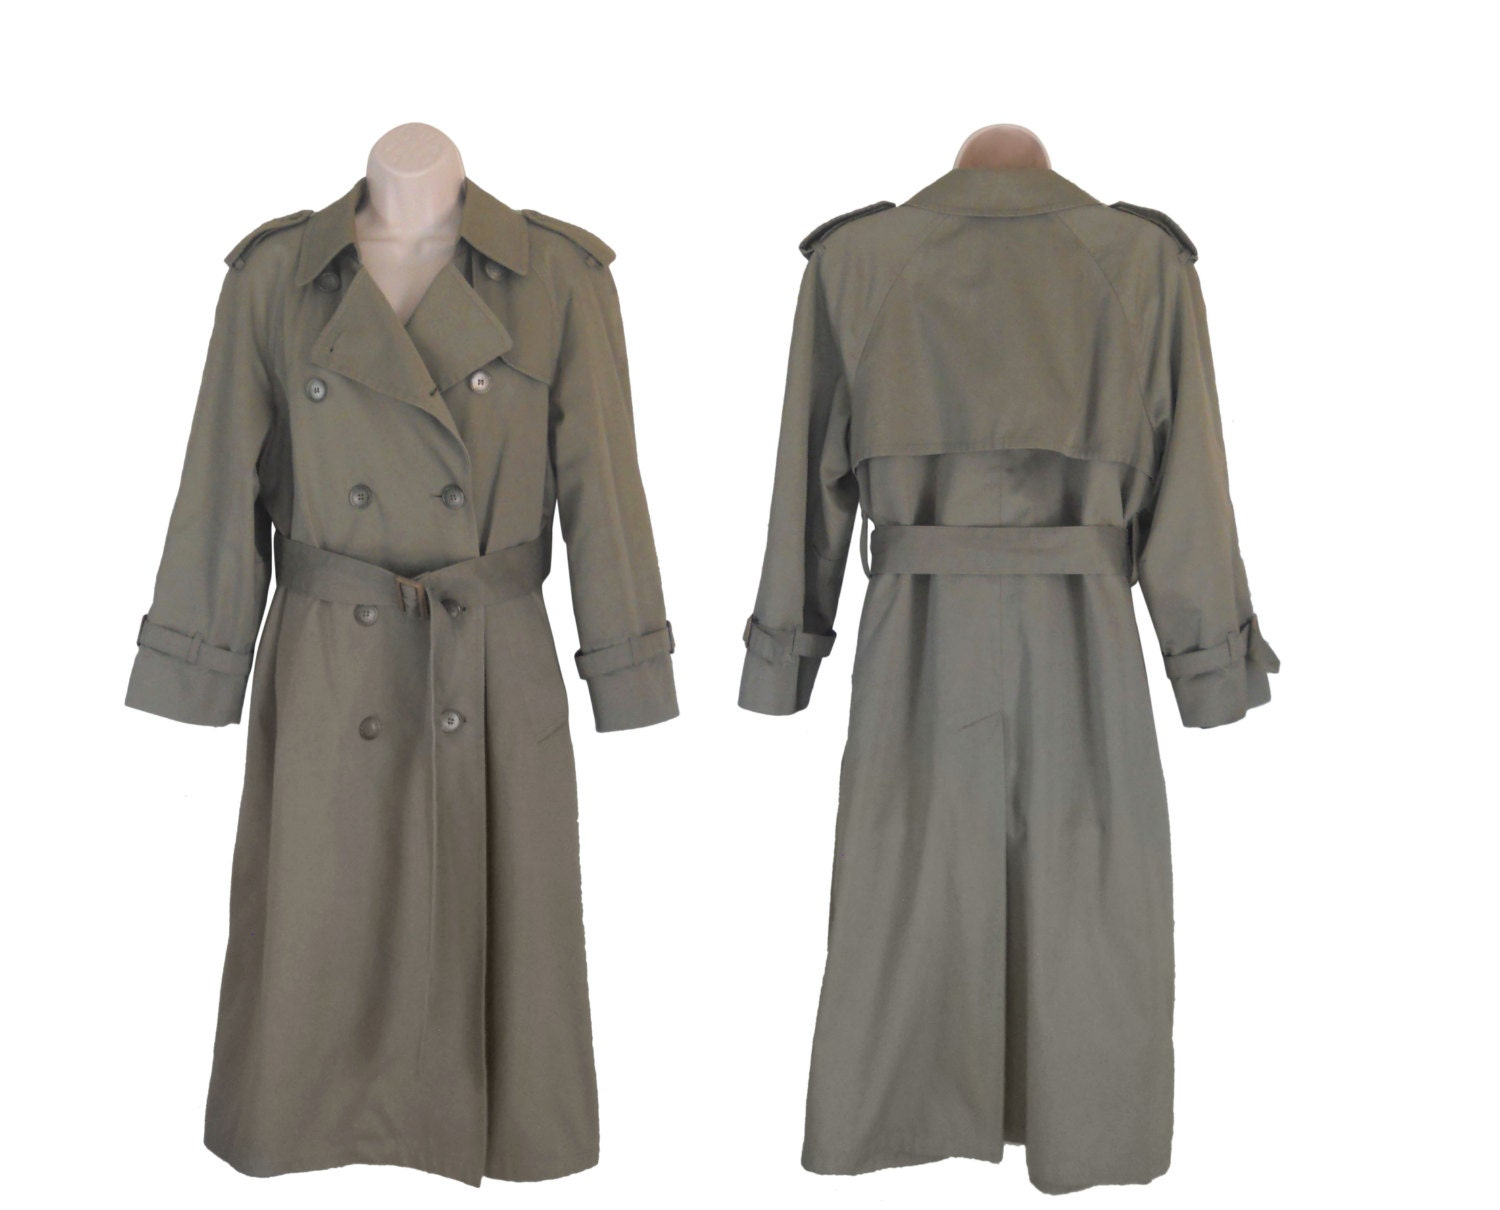 Shop for London fog womens trench coats Women's Jackets & Coats at Shopzilla. Buy Clothing & Accessories online and read professional reviews on London fog womens trench coats Women's Jackets & Coats. Find the right products at the right price every time.